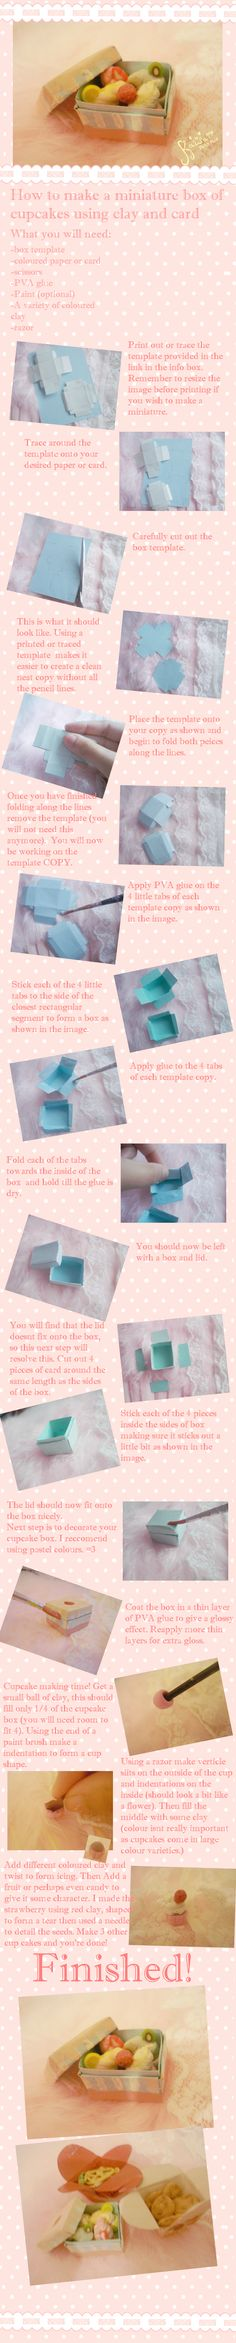 Miniature cupcake and cupcake box TUTORIAL by ~KawaiiPetitPois on deviantART